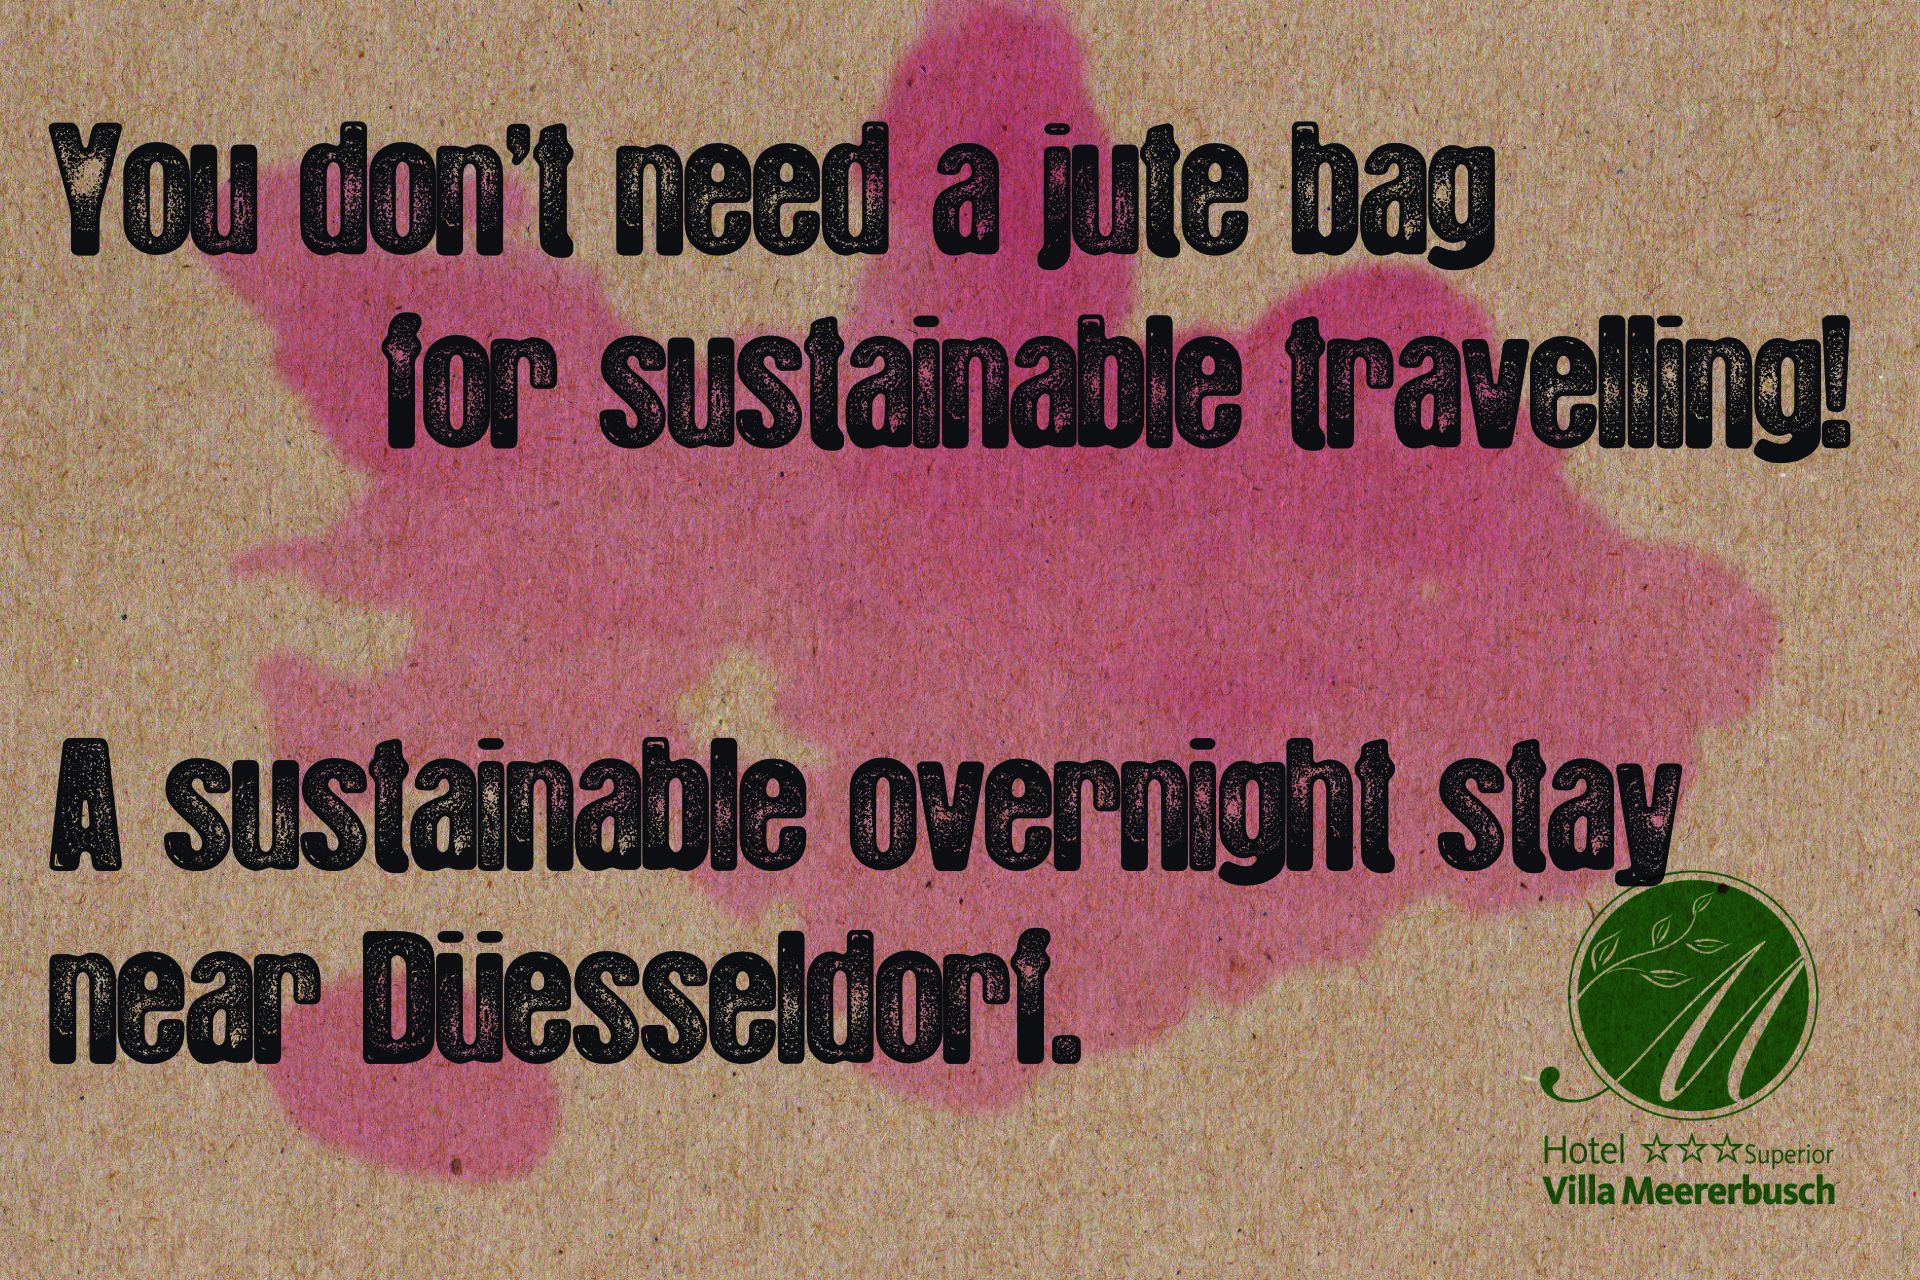 You don't need a junta bag for sustainable travelling!